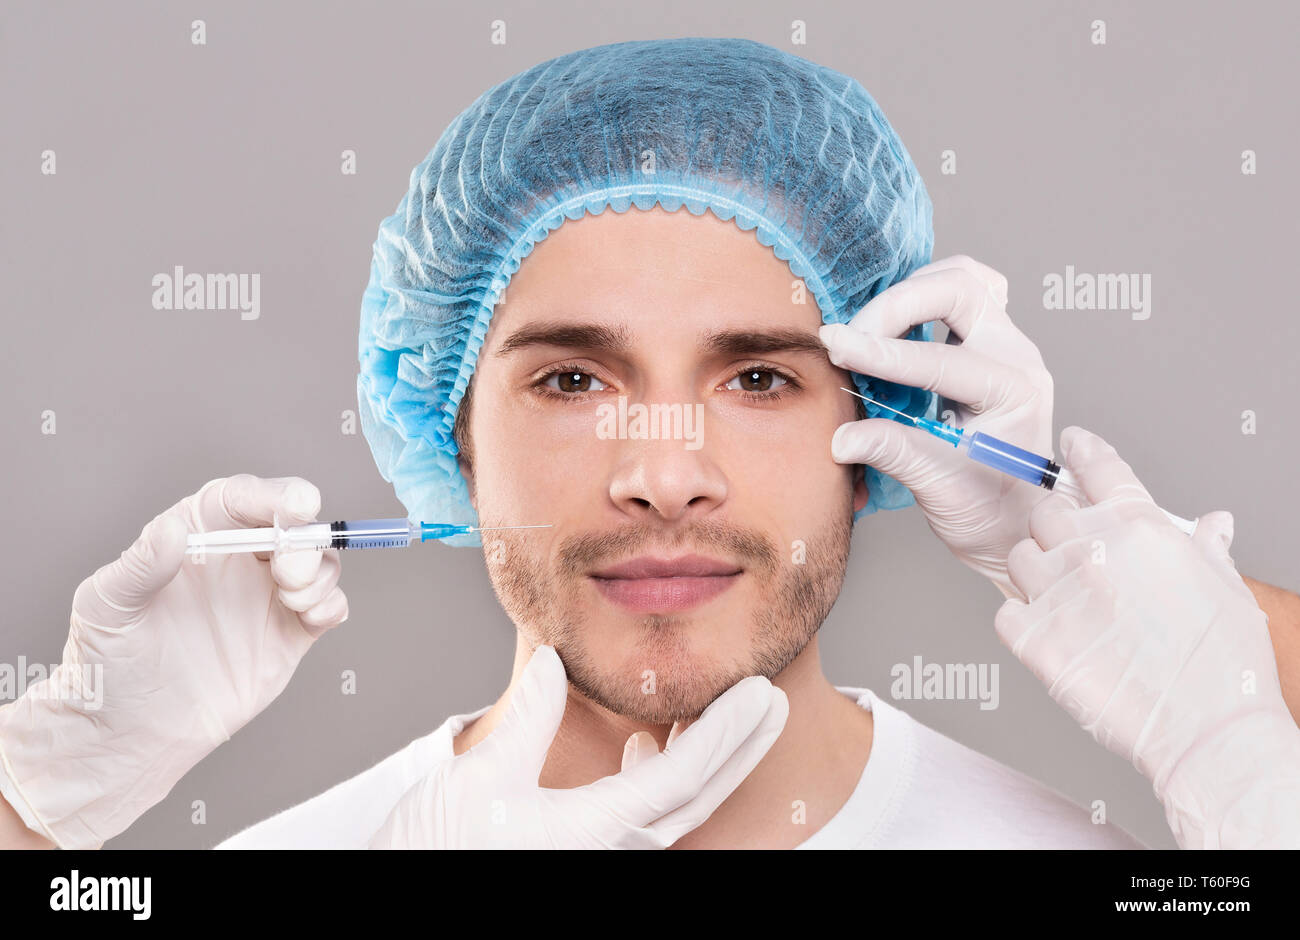 Man's face and beautician's hands with syringes making beauty injections - Stock Image